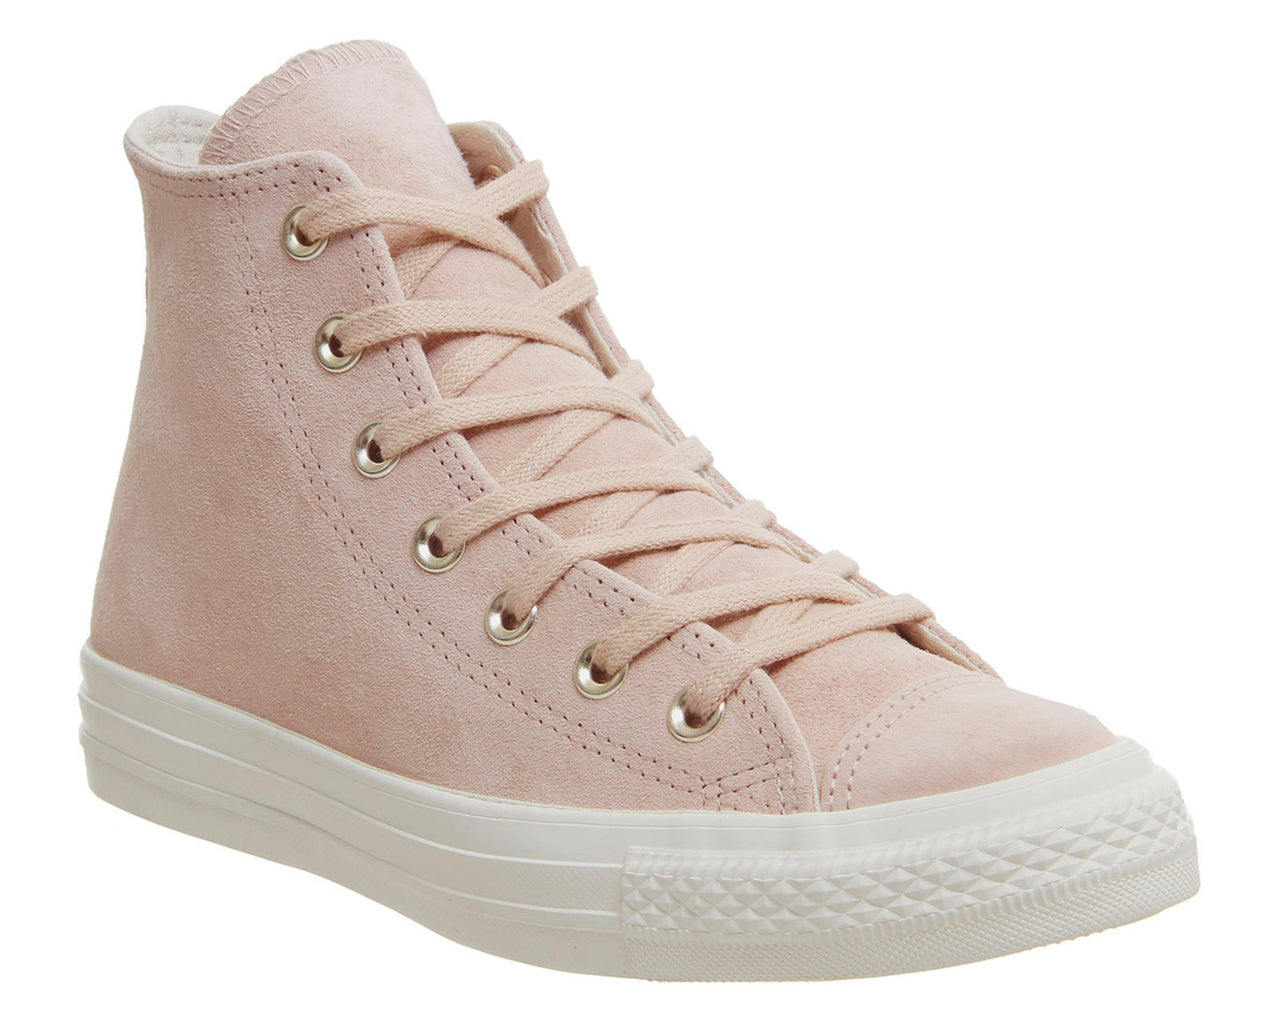 544c52b95fc07 Womens Converse All Star Hi Leather Trainers Particle Beige Driftwood – OFFCUTS  SHOES by OFFICE